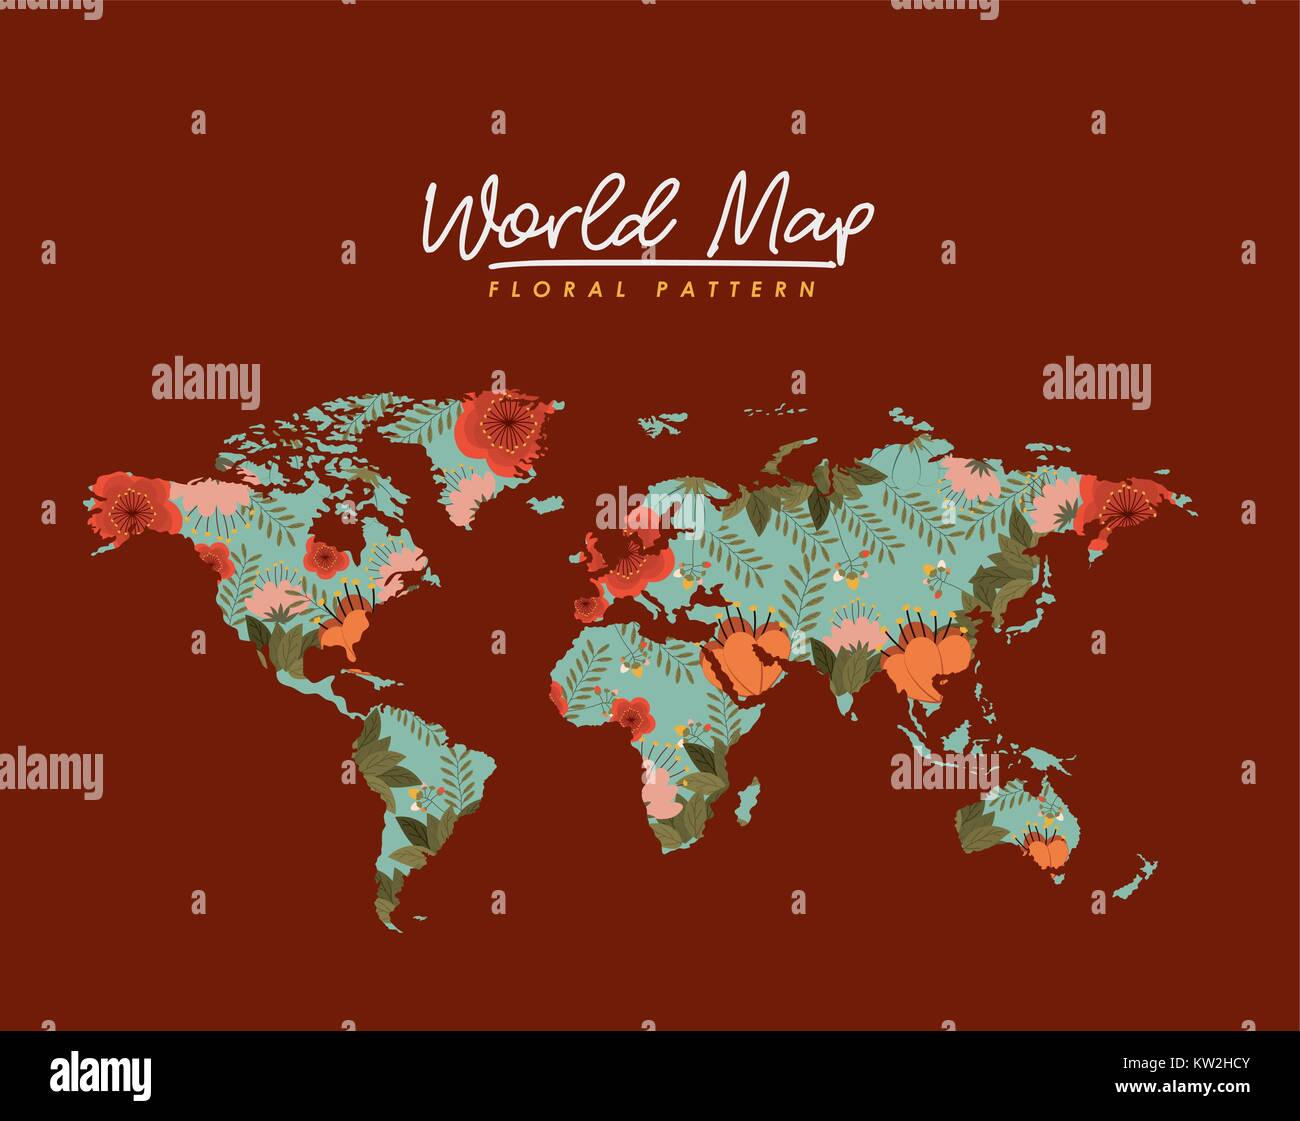 World map floral pattern in brown background stock vector art world map floral pattern in brown background gumiabroncs Image collections